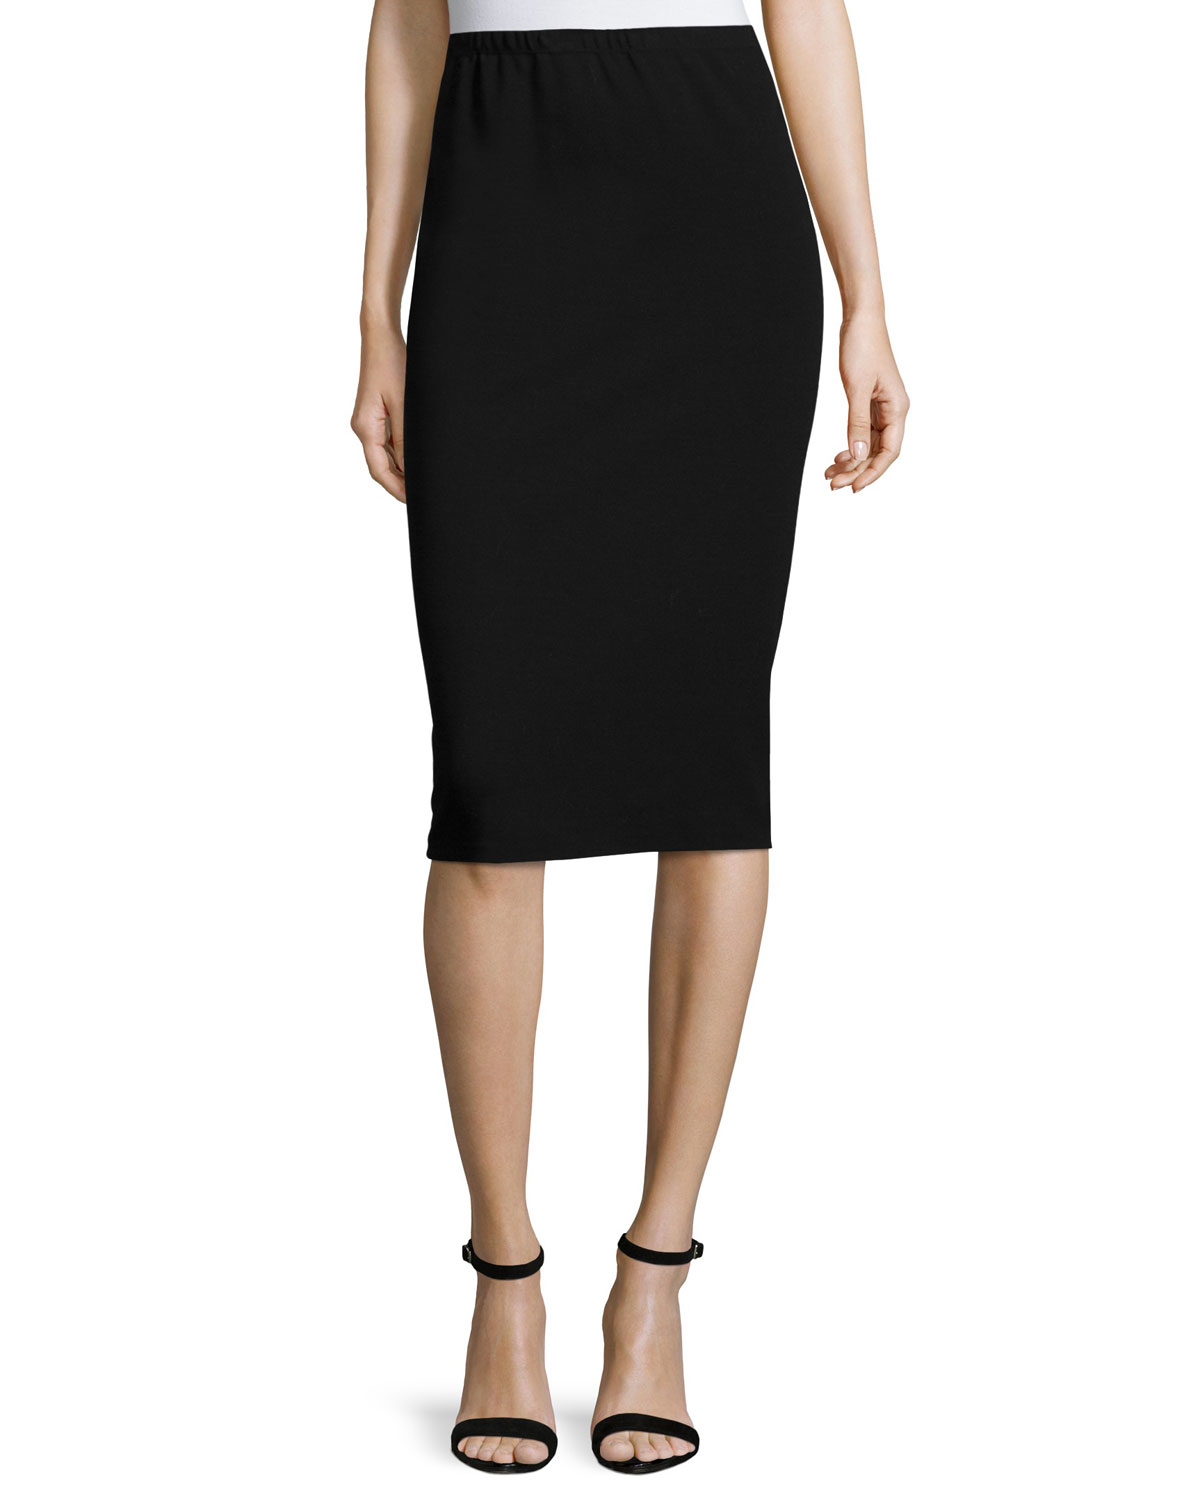 matches. ($ - $) Find great deals on the latest styles of Long pencil skirt. Compare prices & save money on Women's Skirts.